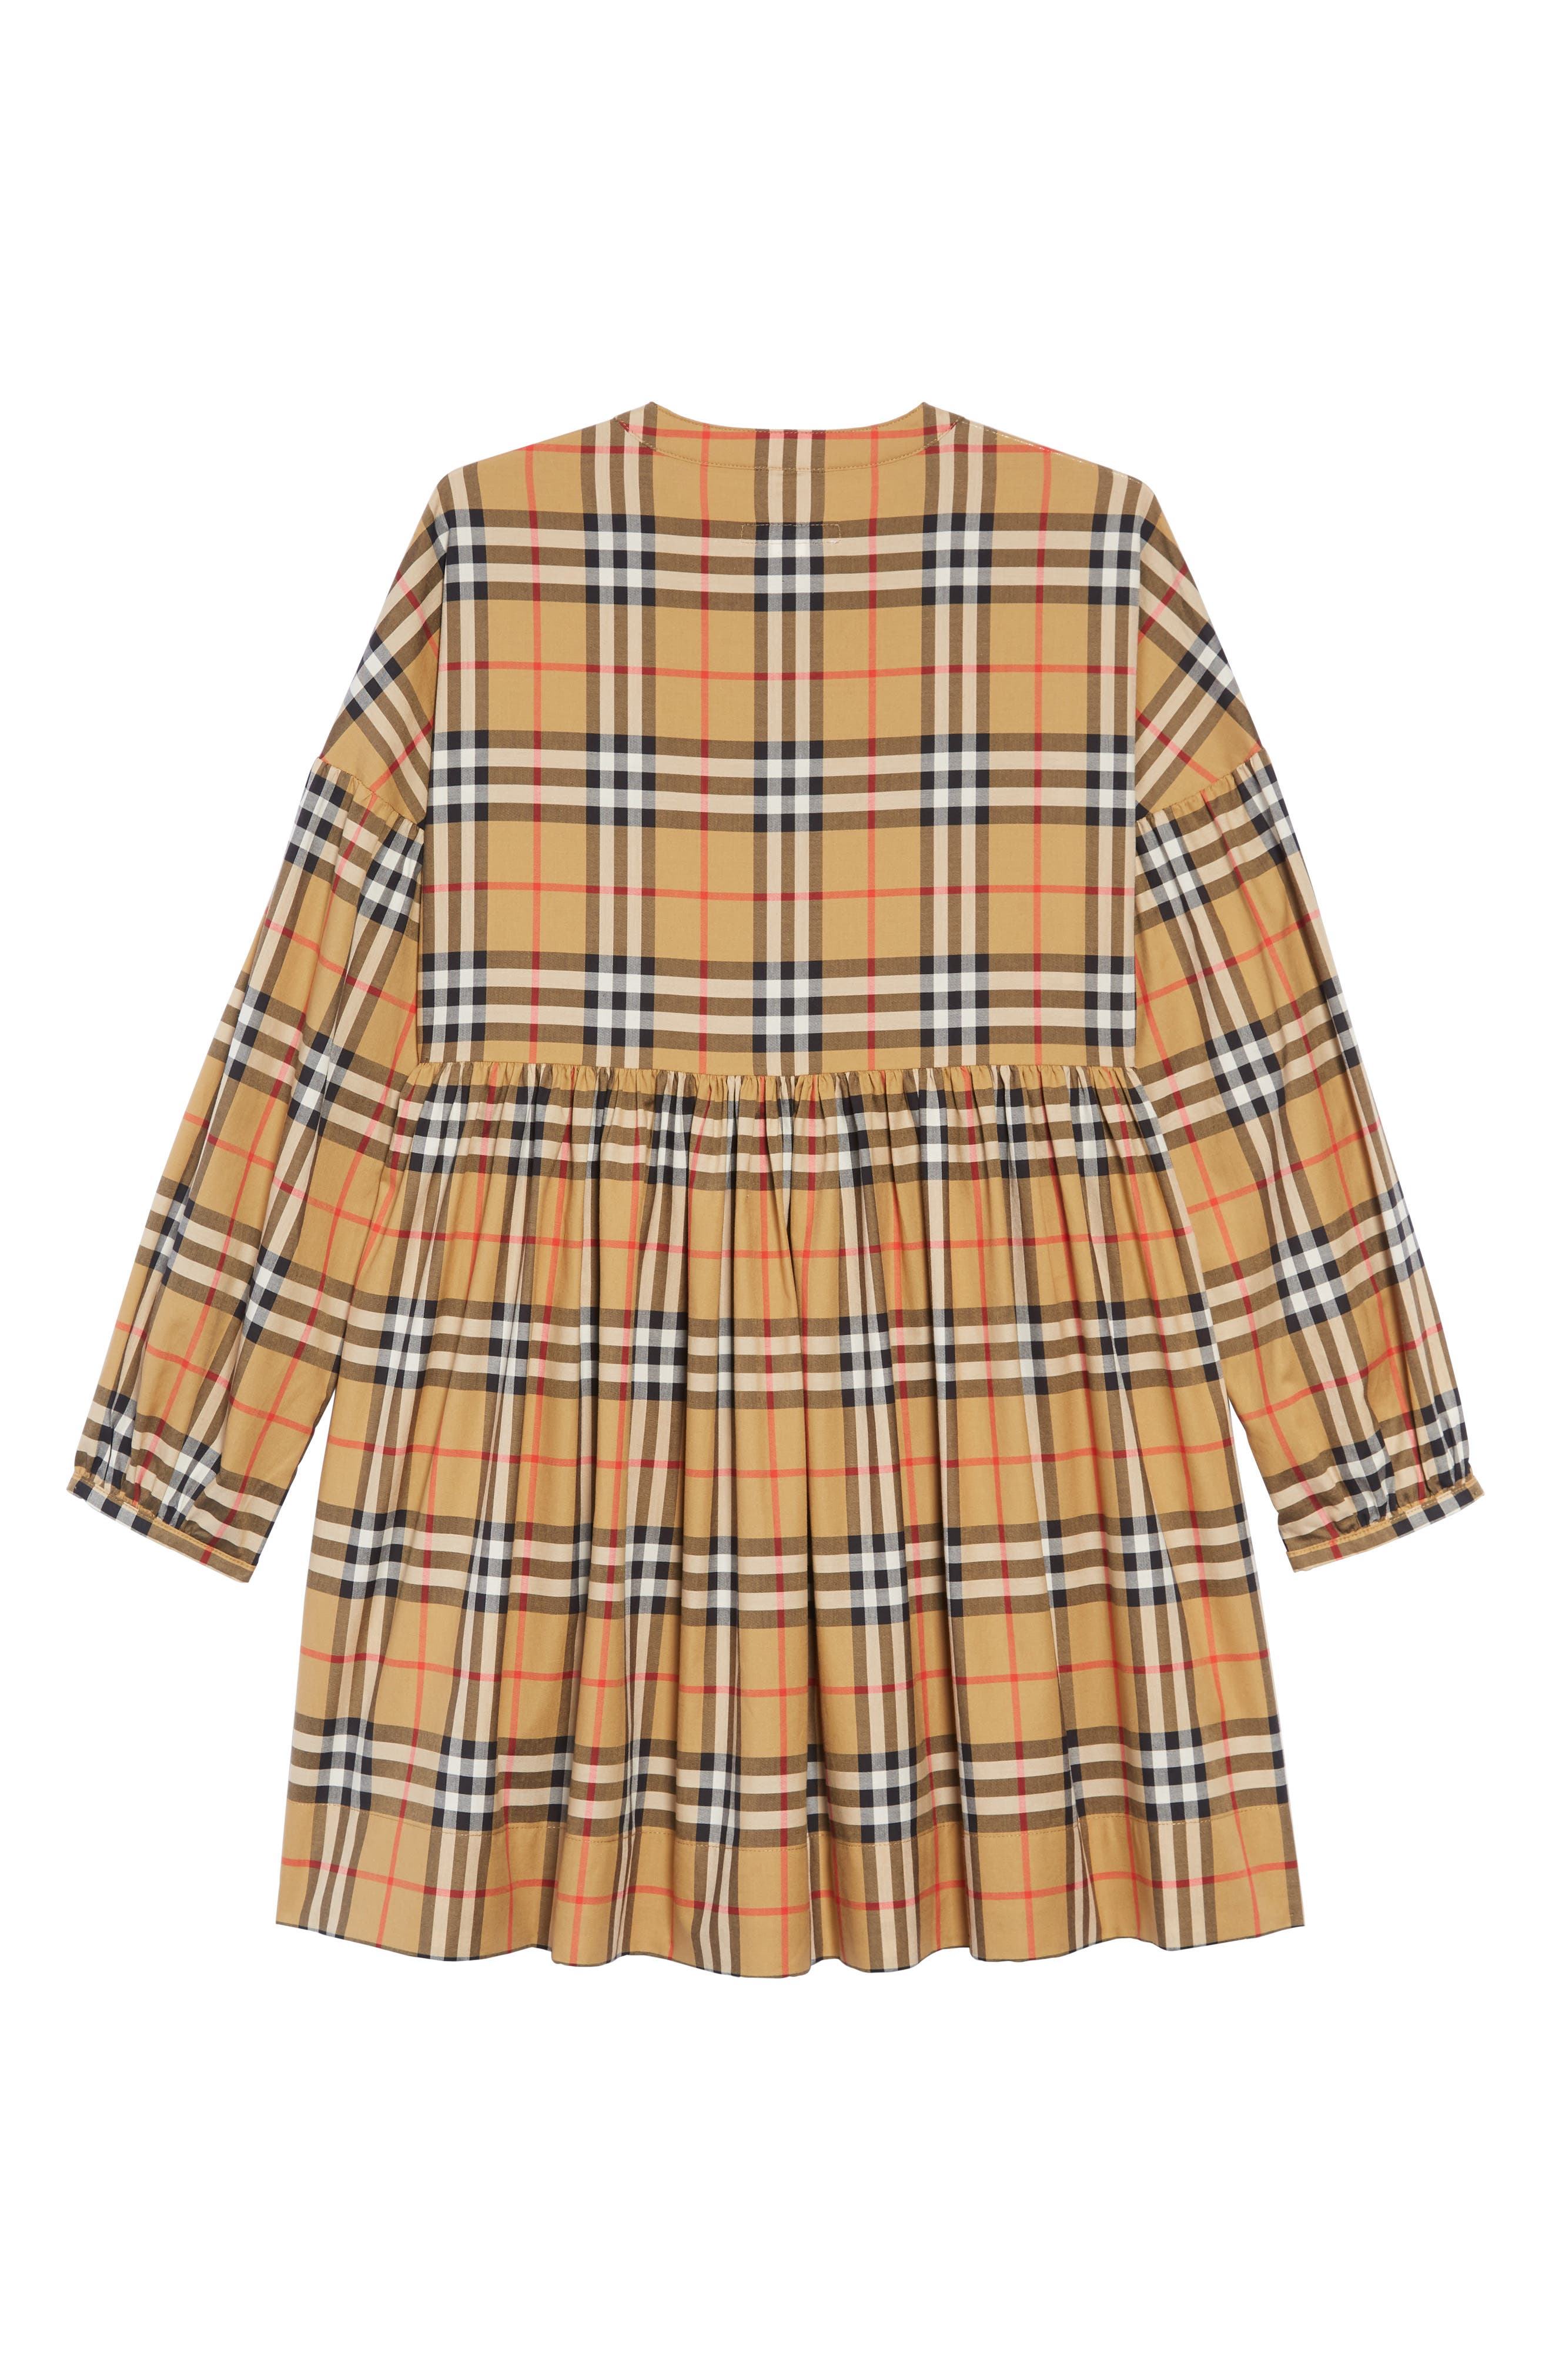 BURBERRY, Marny Dress, Alternate thumbnail 2, color, ANTIQUE YELLW IP CHK